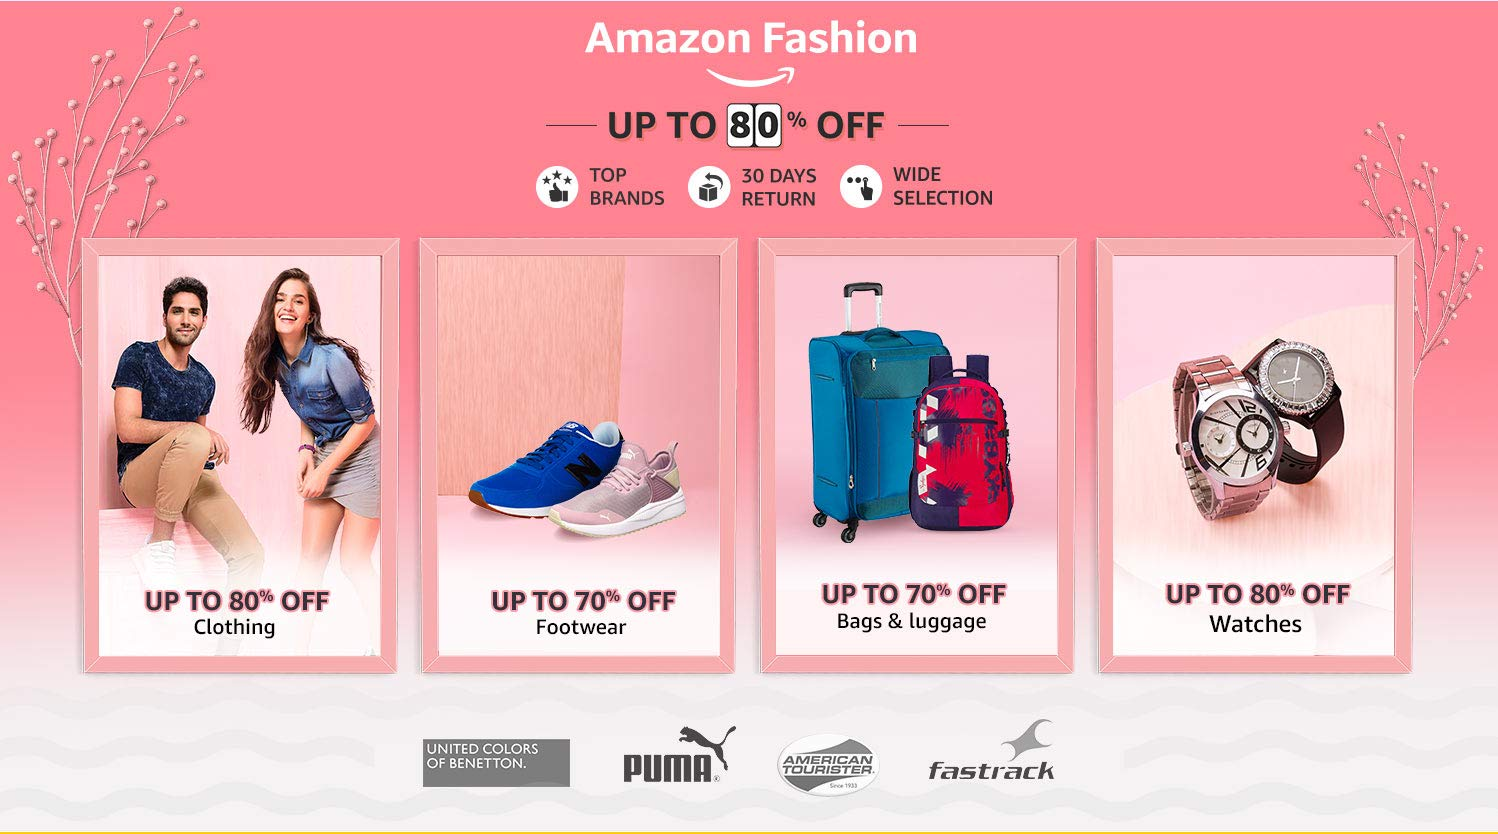 Amazon Fashion: Up to 80% off